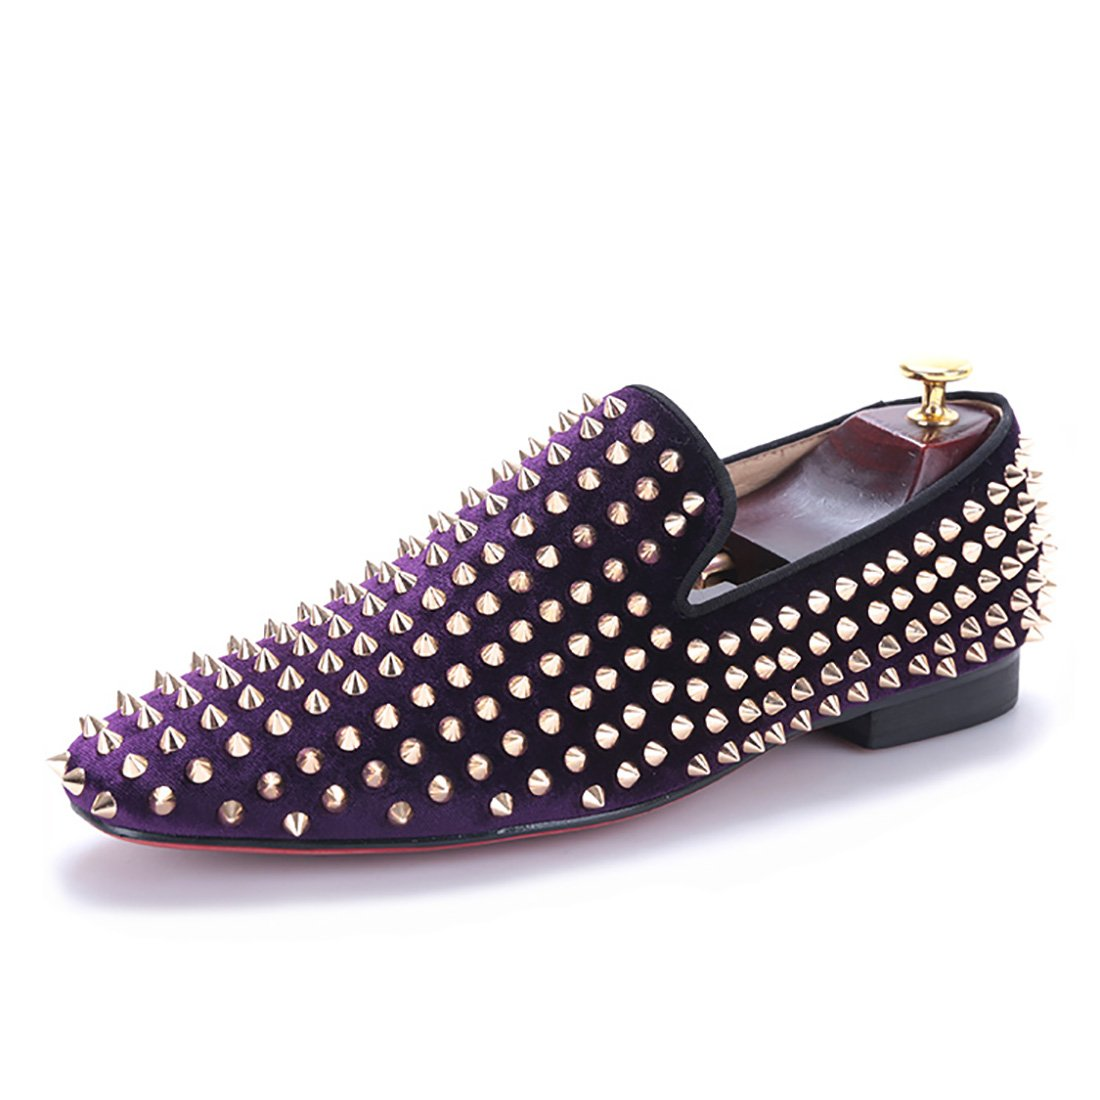 HI&HANN Purple Velvet With Gold Rivets Men Loafers Fashion Party and Prom Loafer Shoes Slip-On Smoking Slipper-12-Purple